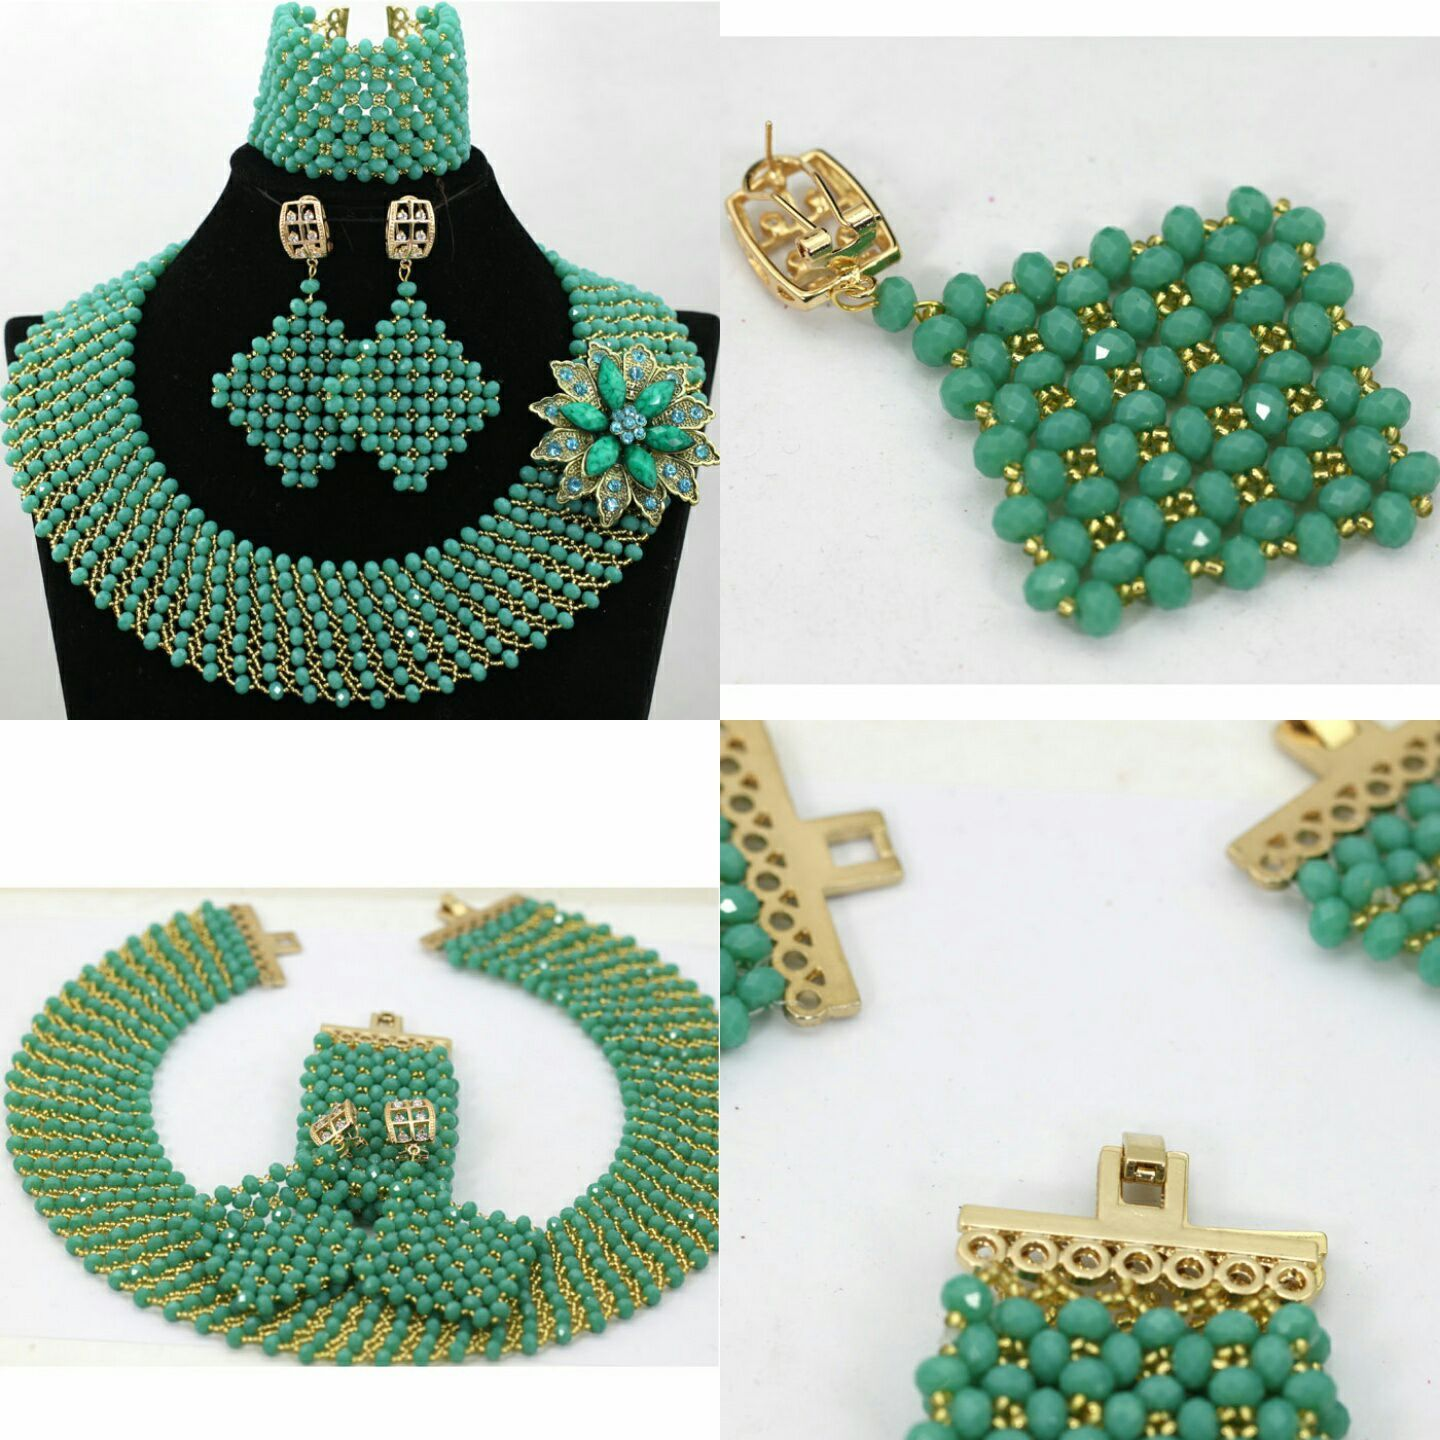 nigerian beads 2016 - Google Search | collares | Pinterest | Beads ...